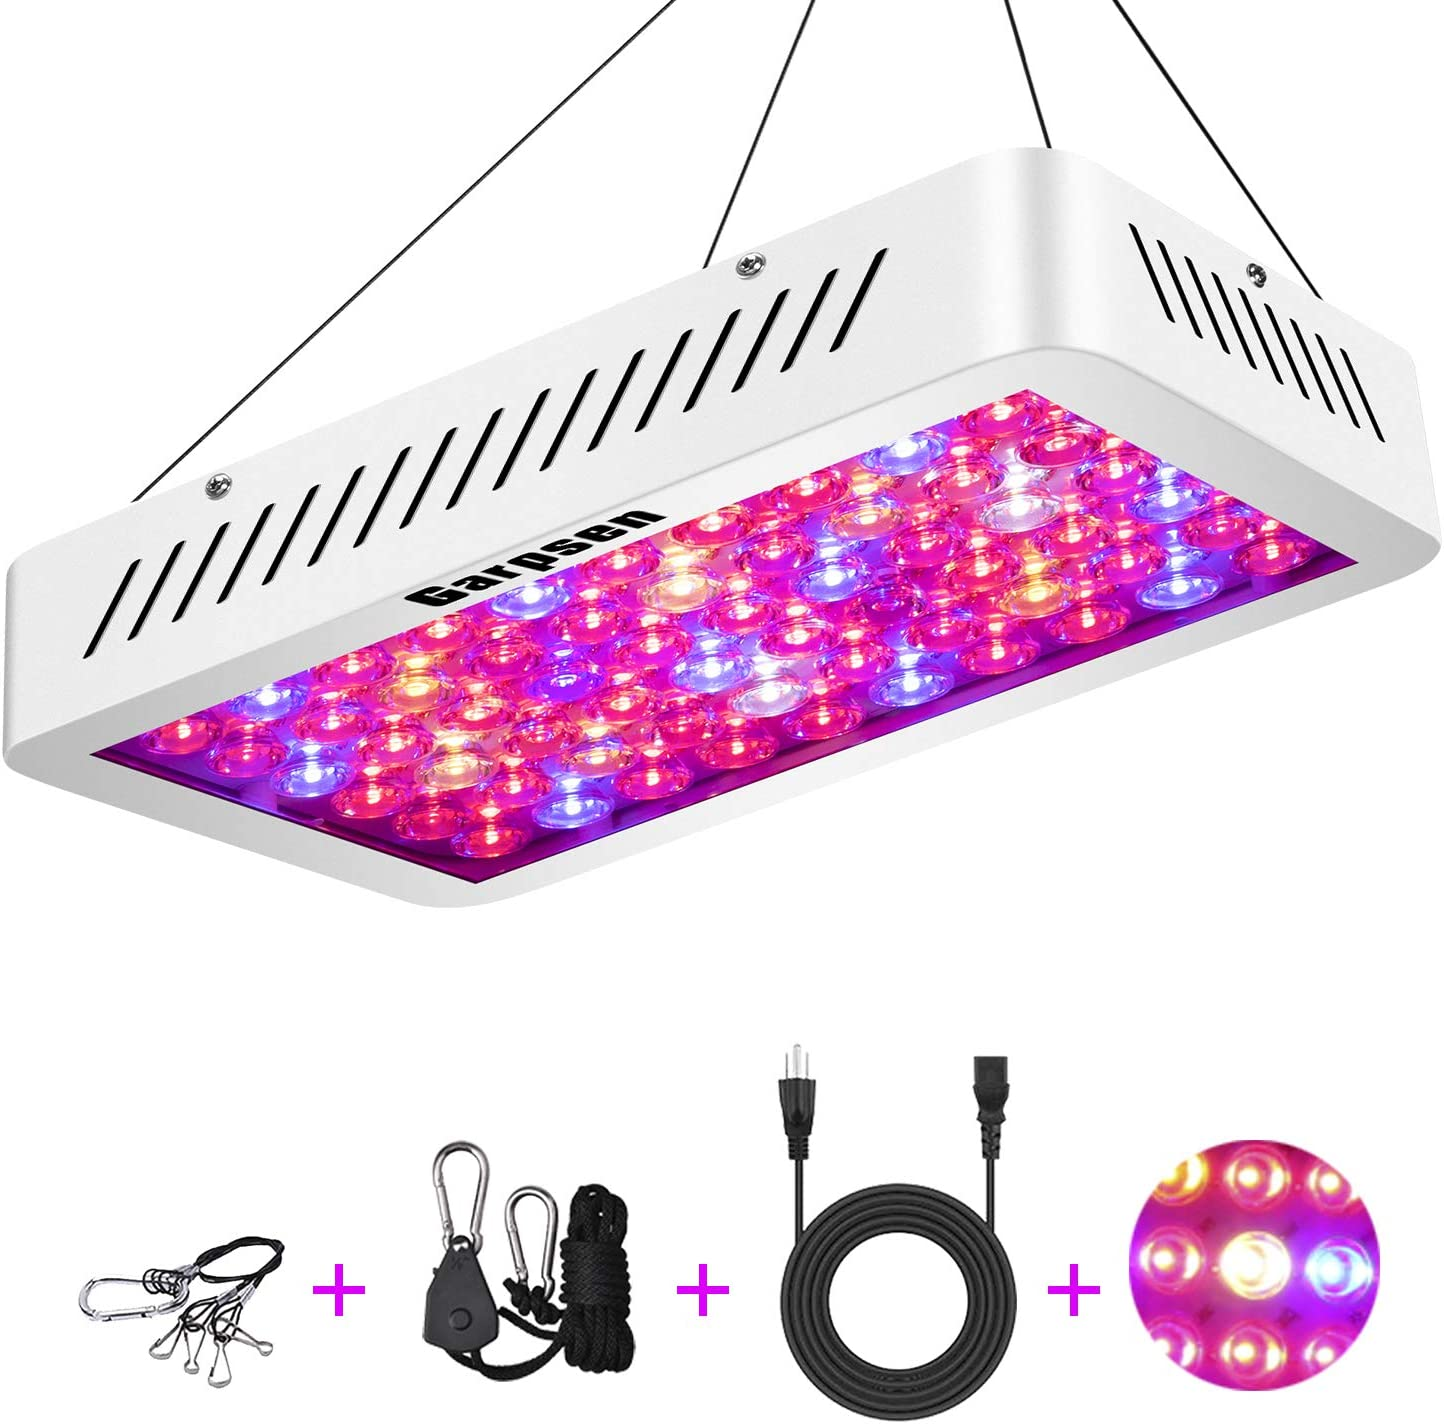 600W Optical Lens LED Grow Light Full Spectrum Garpsen C600 Plant Grow Lamp with Daisy Chain for Indoor Greenhouse Hydroponic Plants Veg and Flower